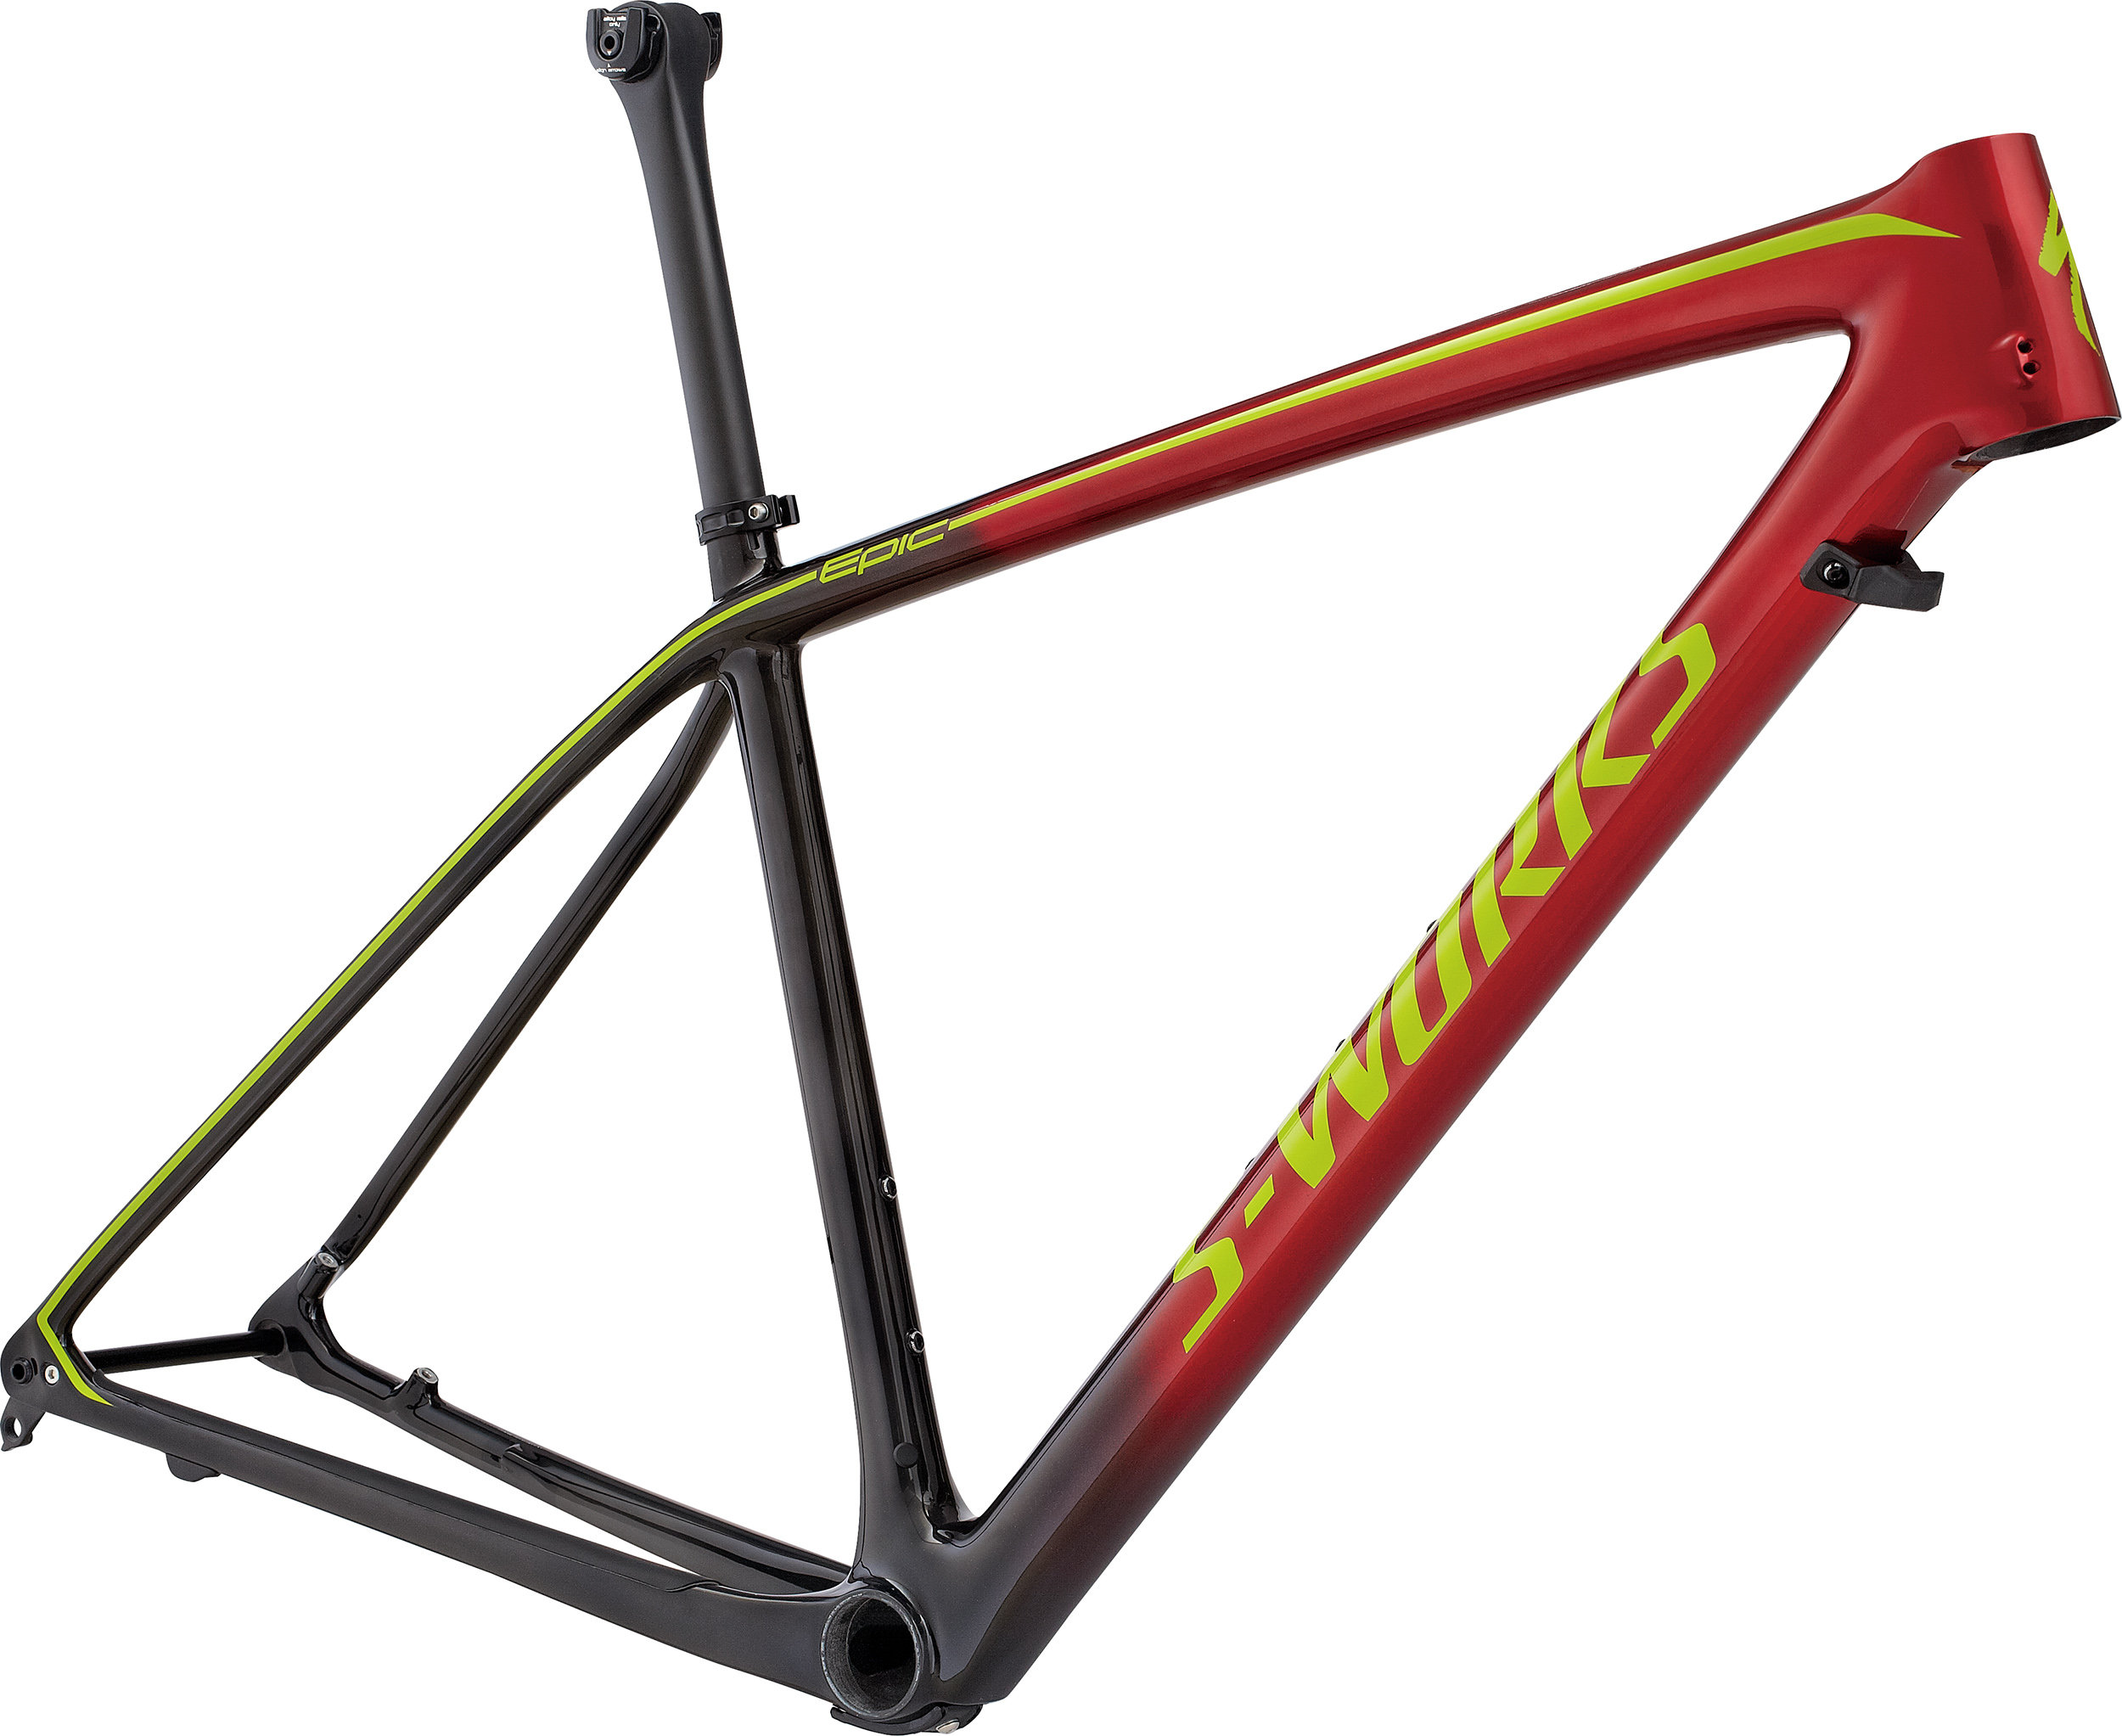 SPECIALIZED SW EPIC HT CARBON 29 FRM BLK/CNDYRED/HYP XL - SPECIALIZED SW EPIC HT CARBON 29 FRM BLK/CNDYRED/HYP XL